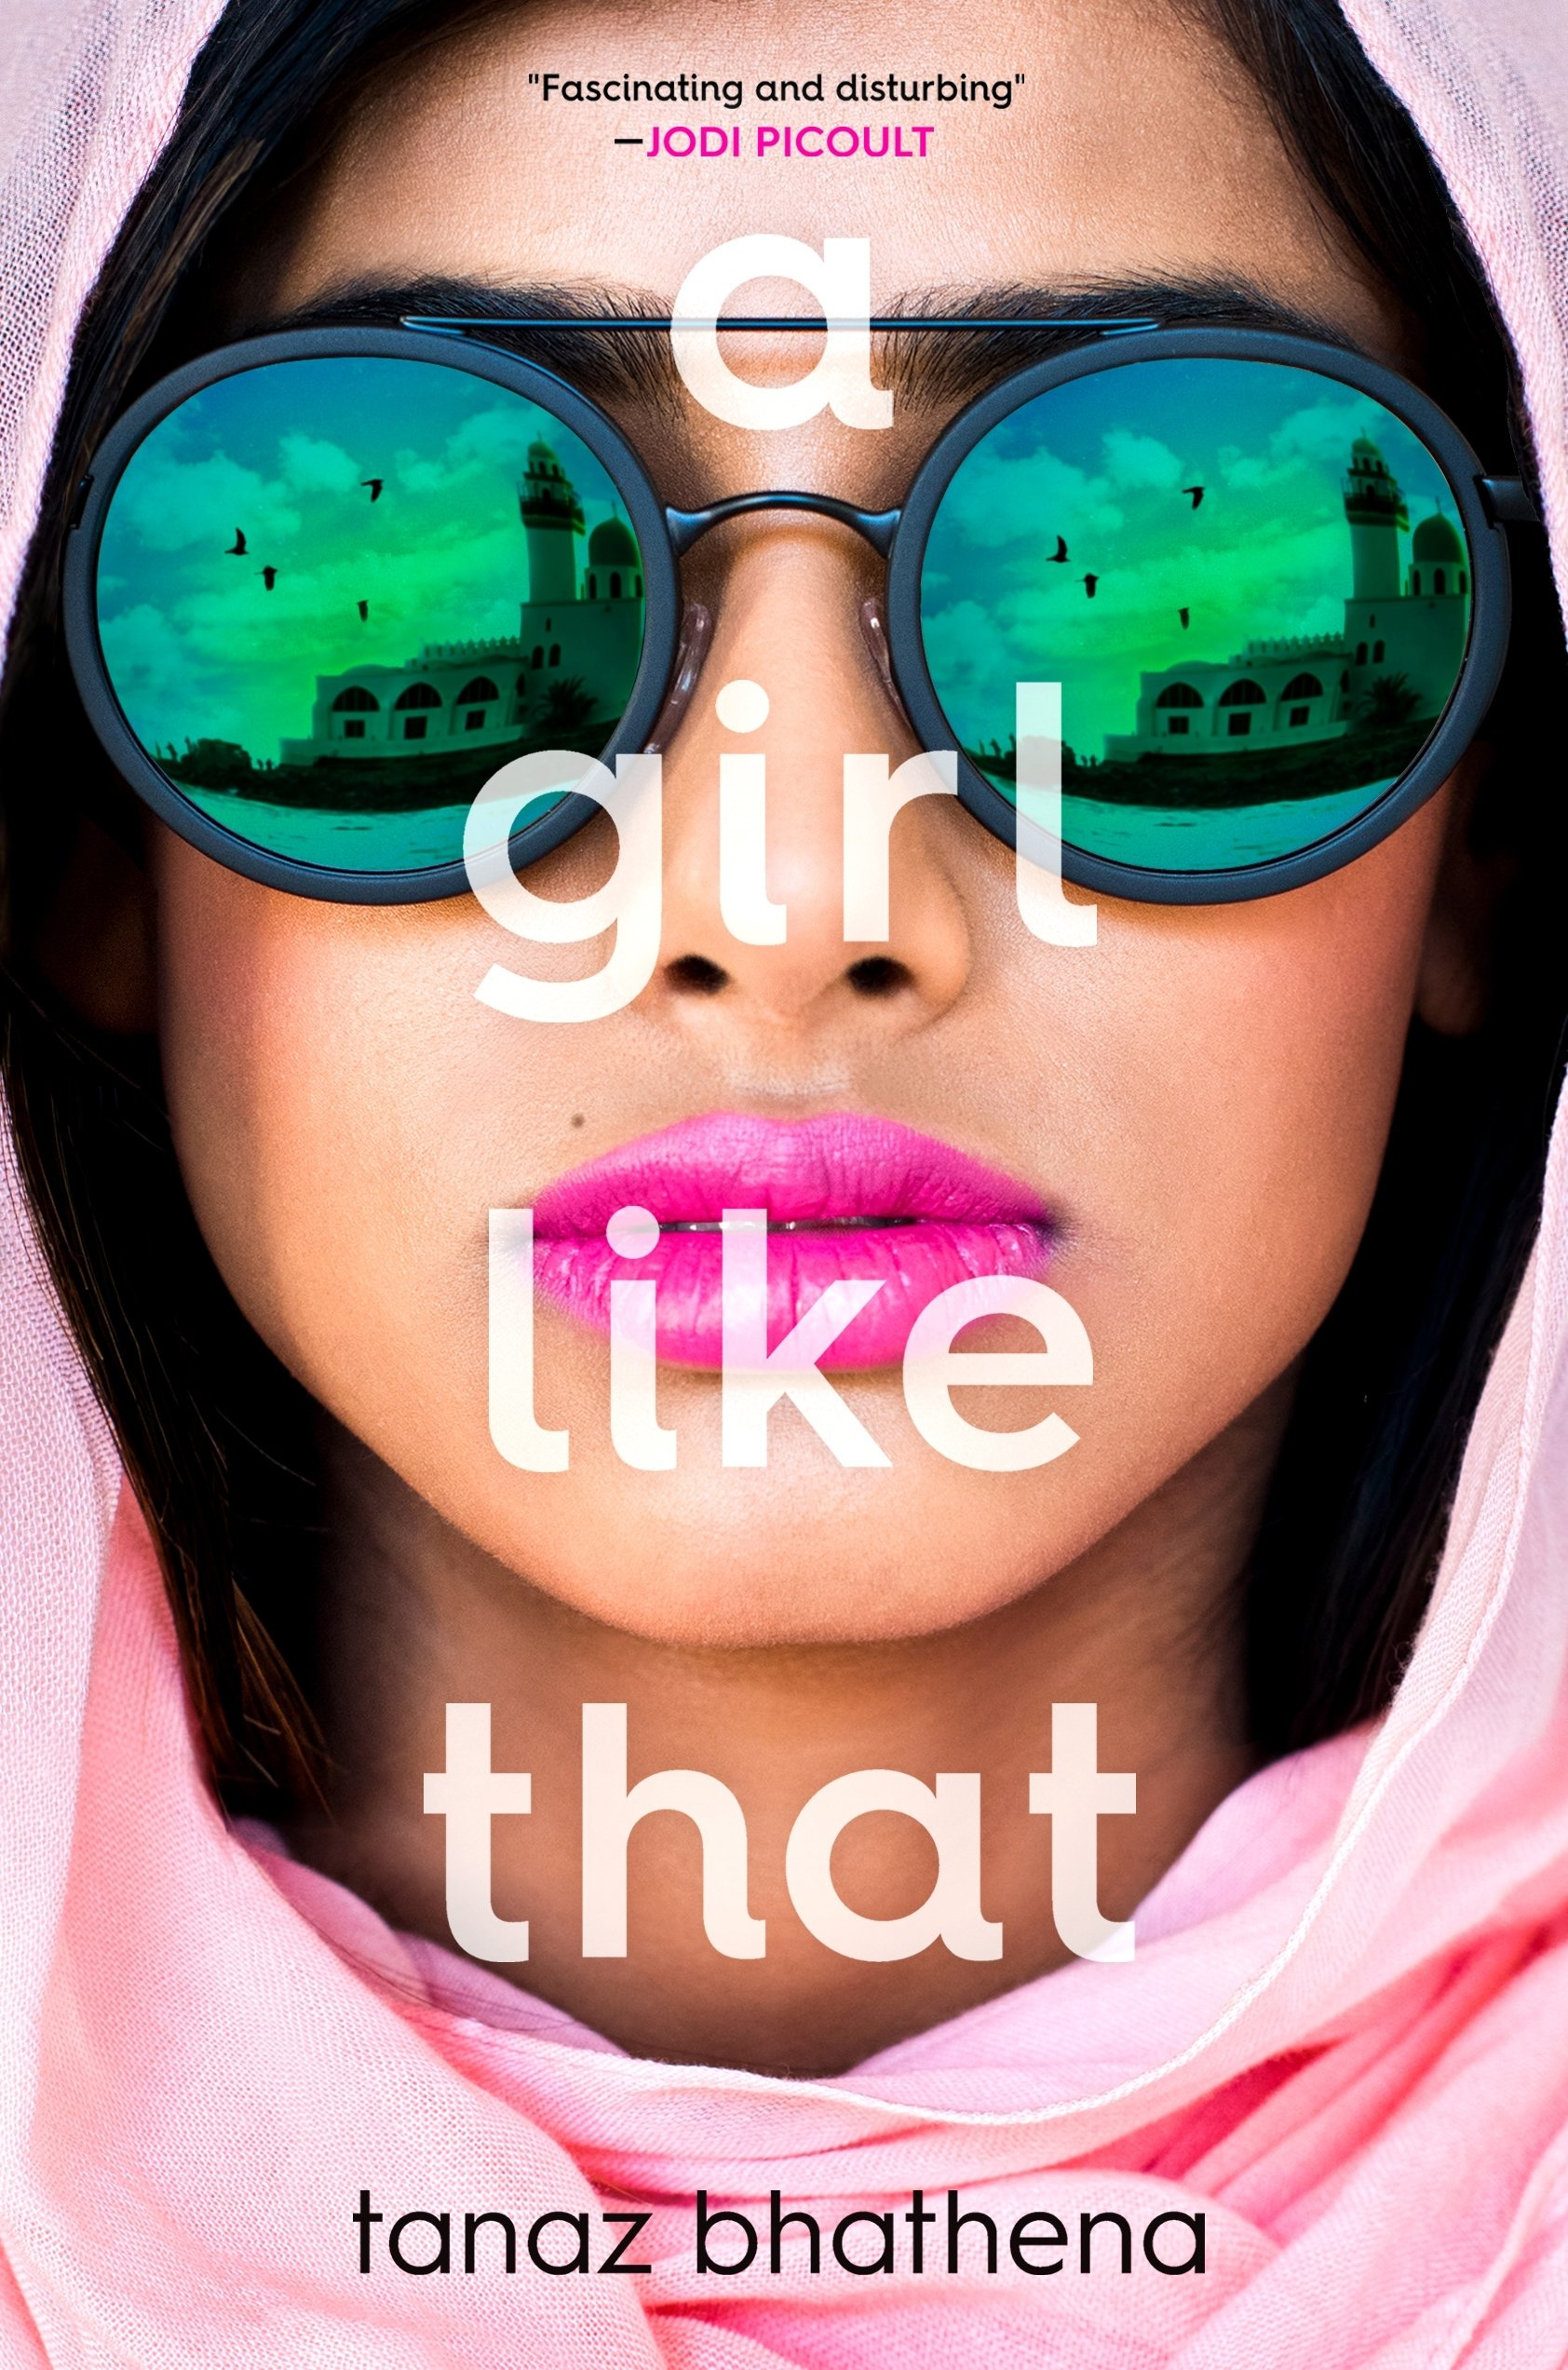 Amazon.com: A Girl Like That (9780374305444): Bhathena, Tanaz: Books